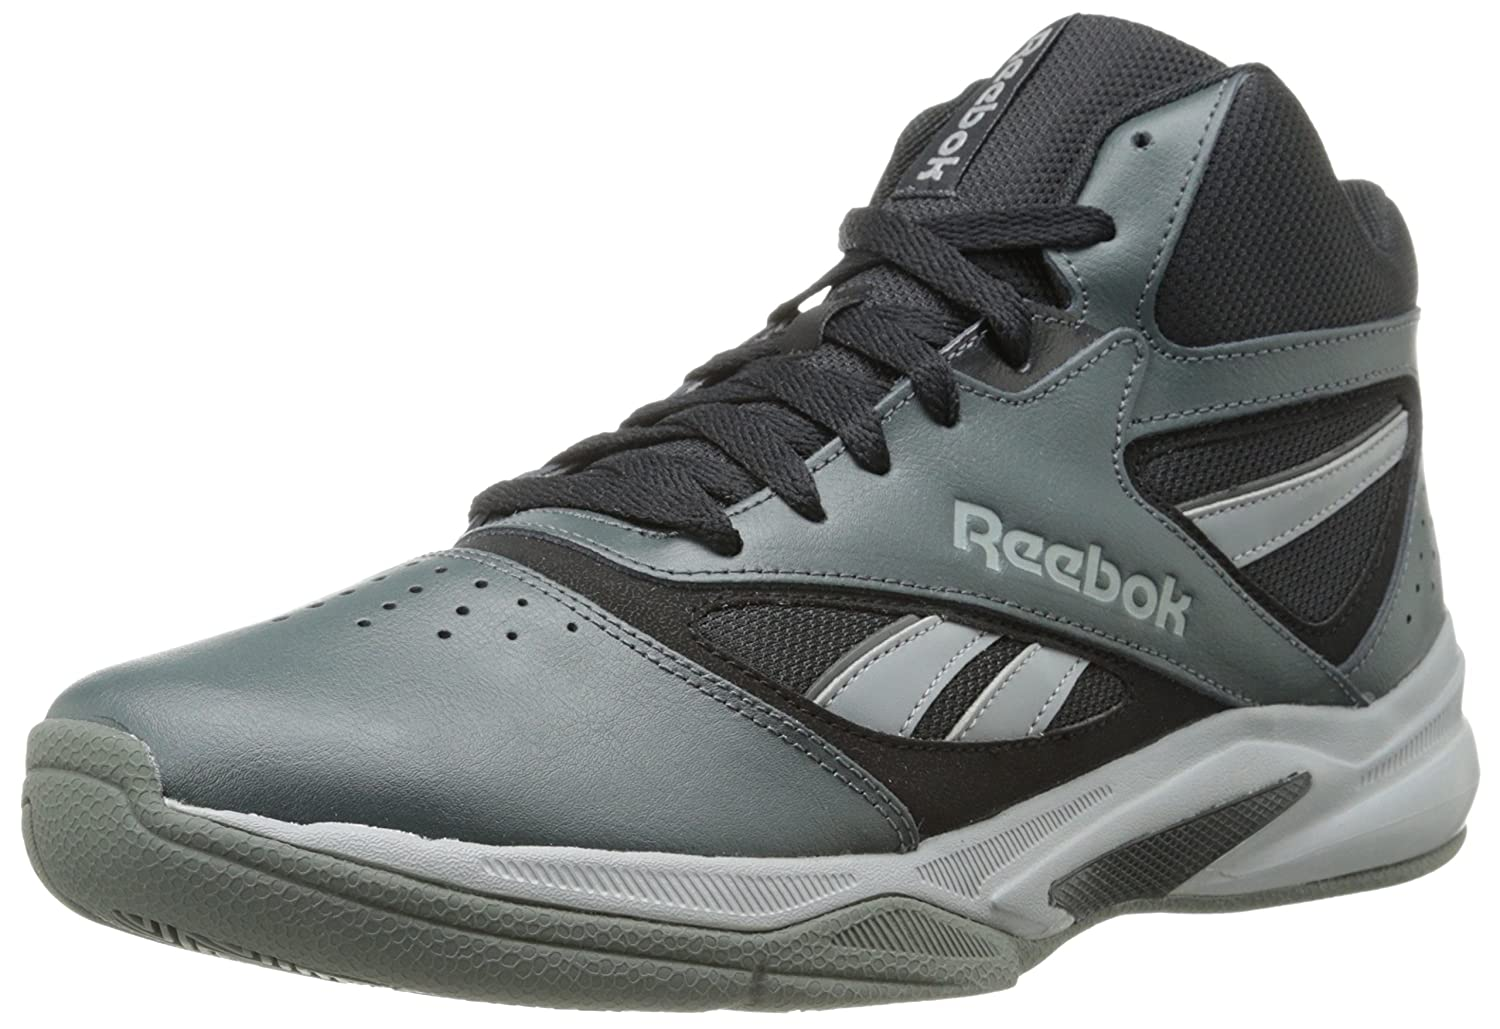 | Reebok Men's Pro Heritage 1 Basketball Shoe